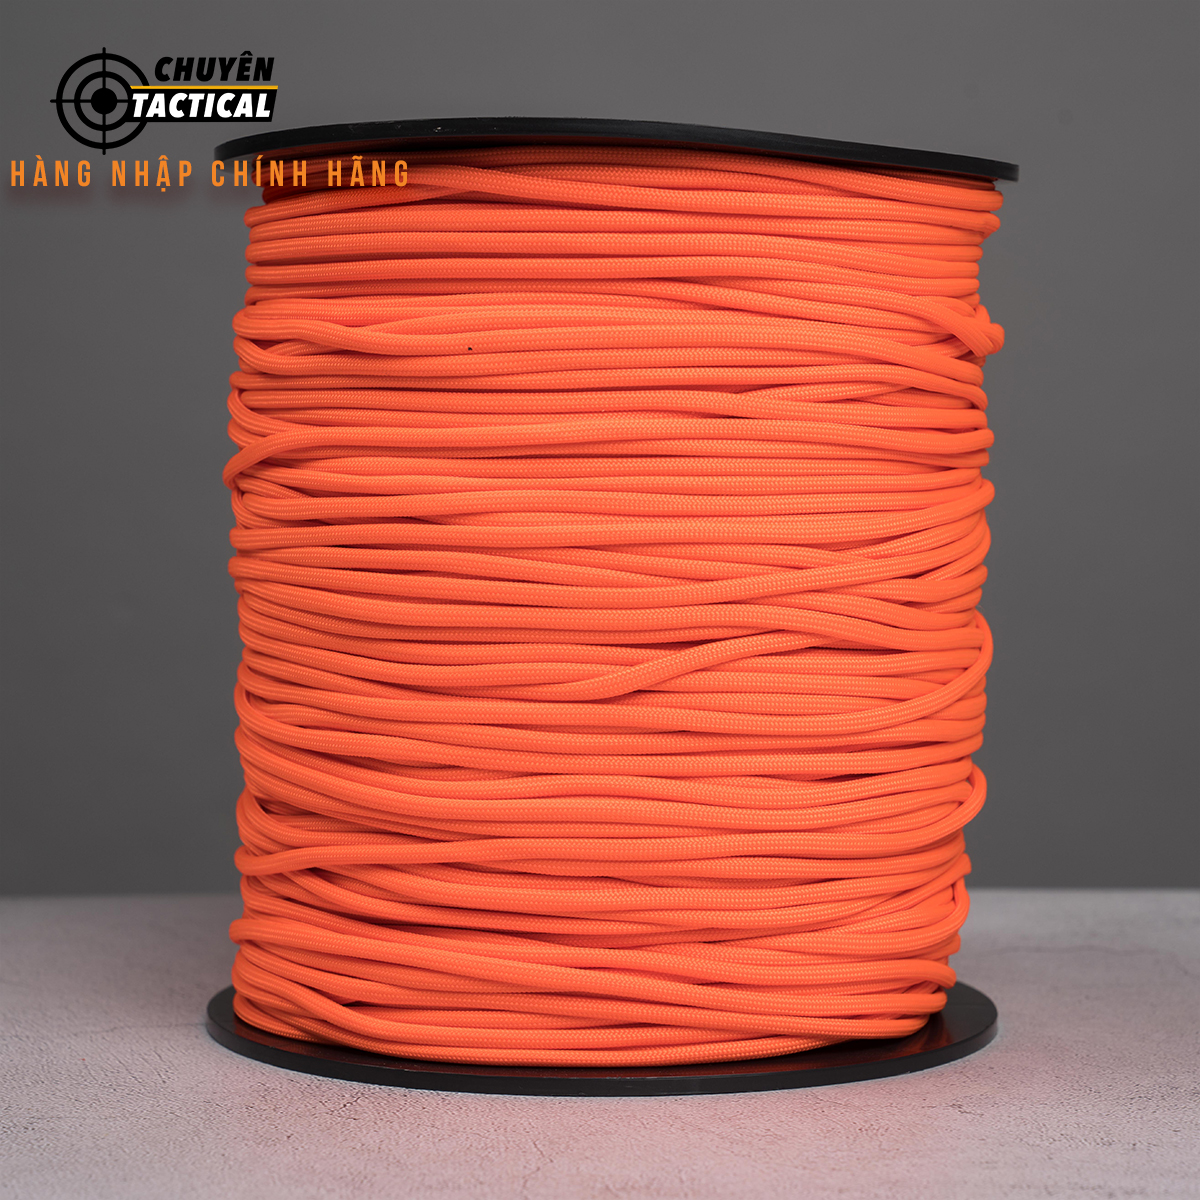 1m - Dây Paracord 550 - Neon Orange